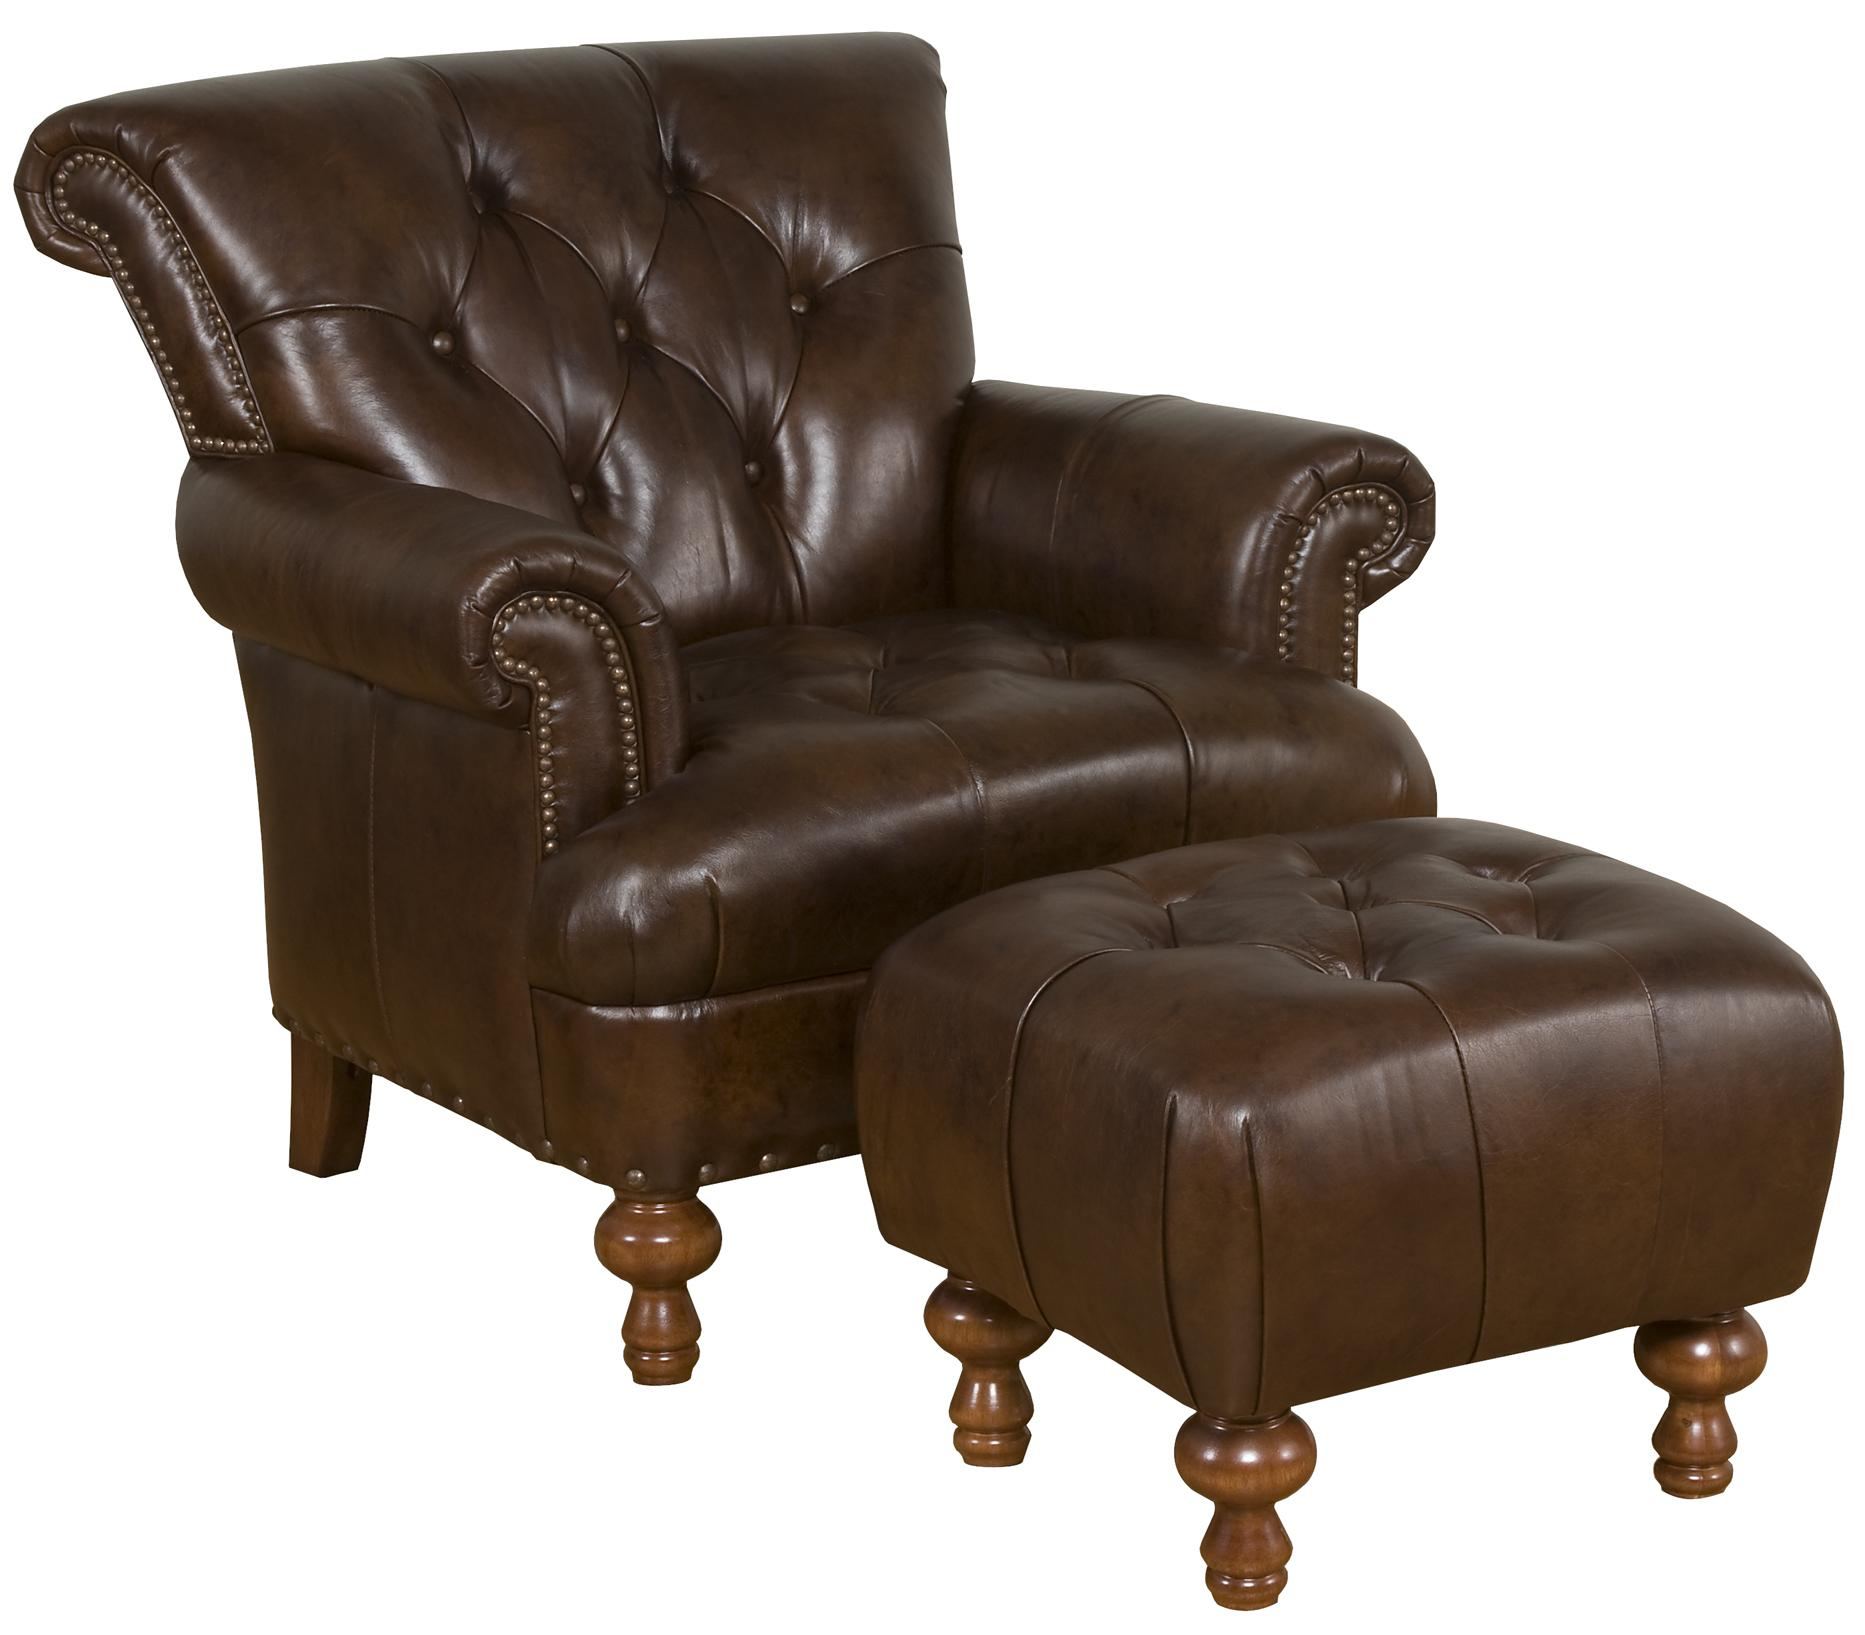 King Hickory Accent Chairs And Ottomans Mystic Tufted Accent